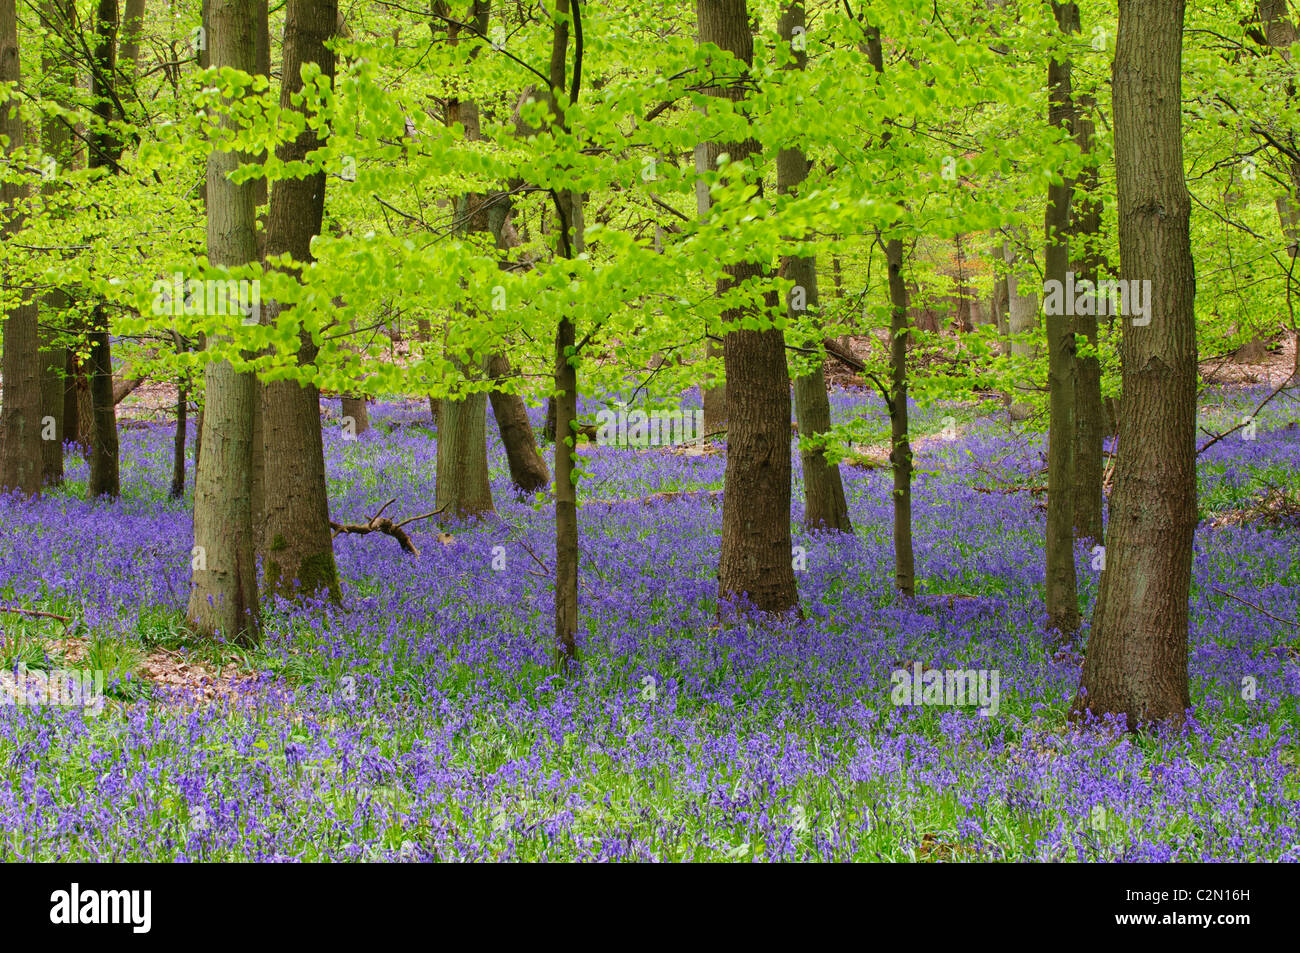 Bluebells in a beech forest in spring, Hertfordshire, England - Stock Image